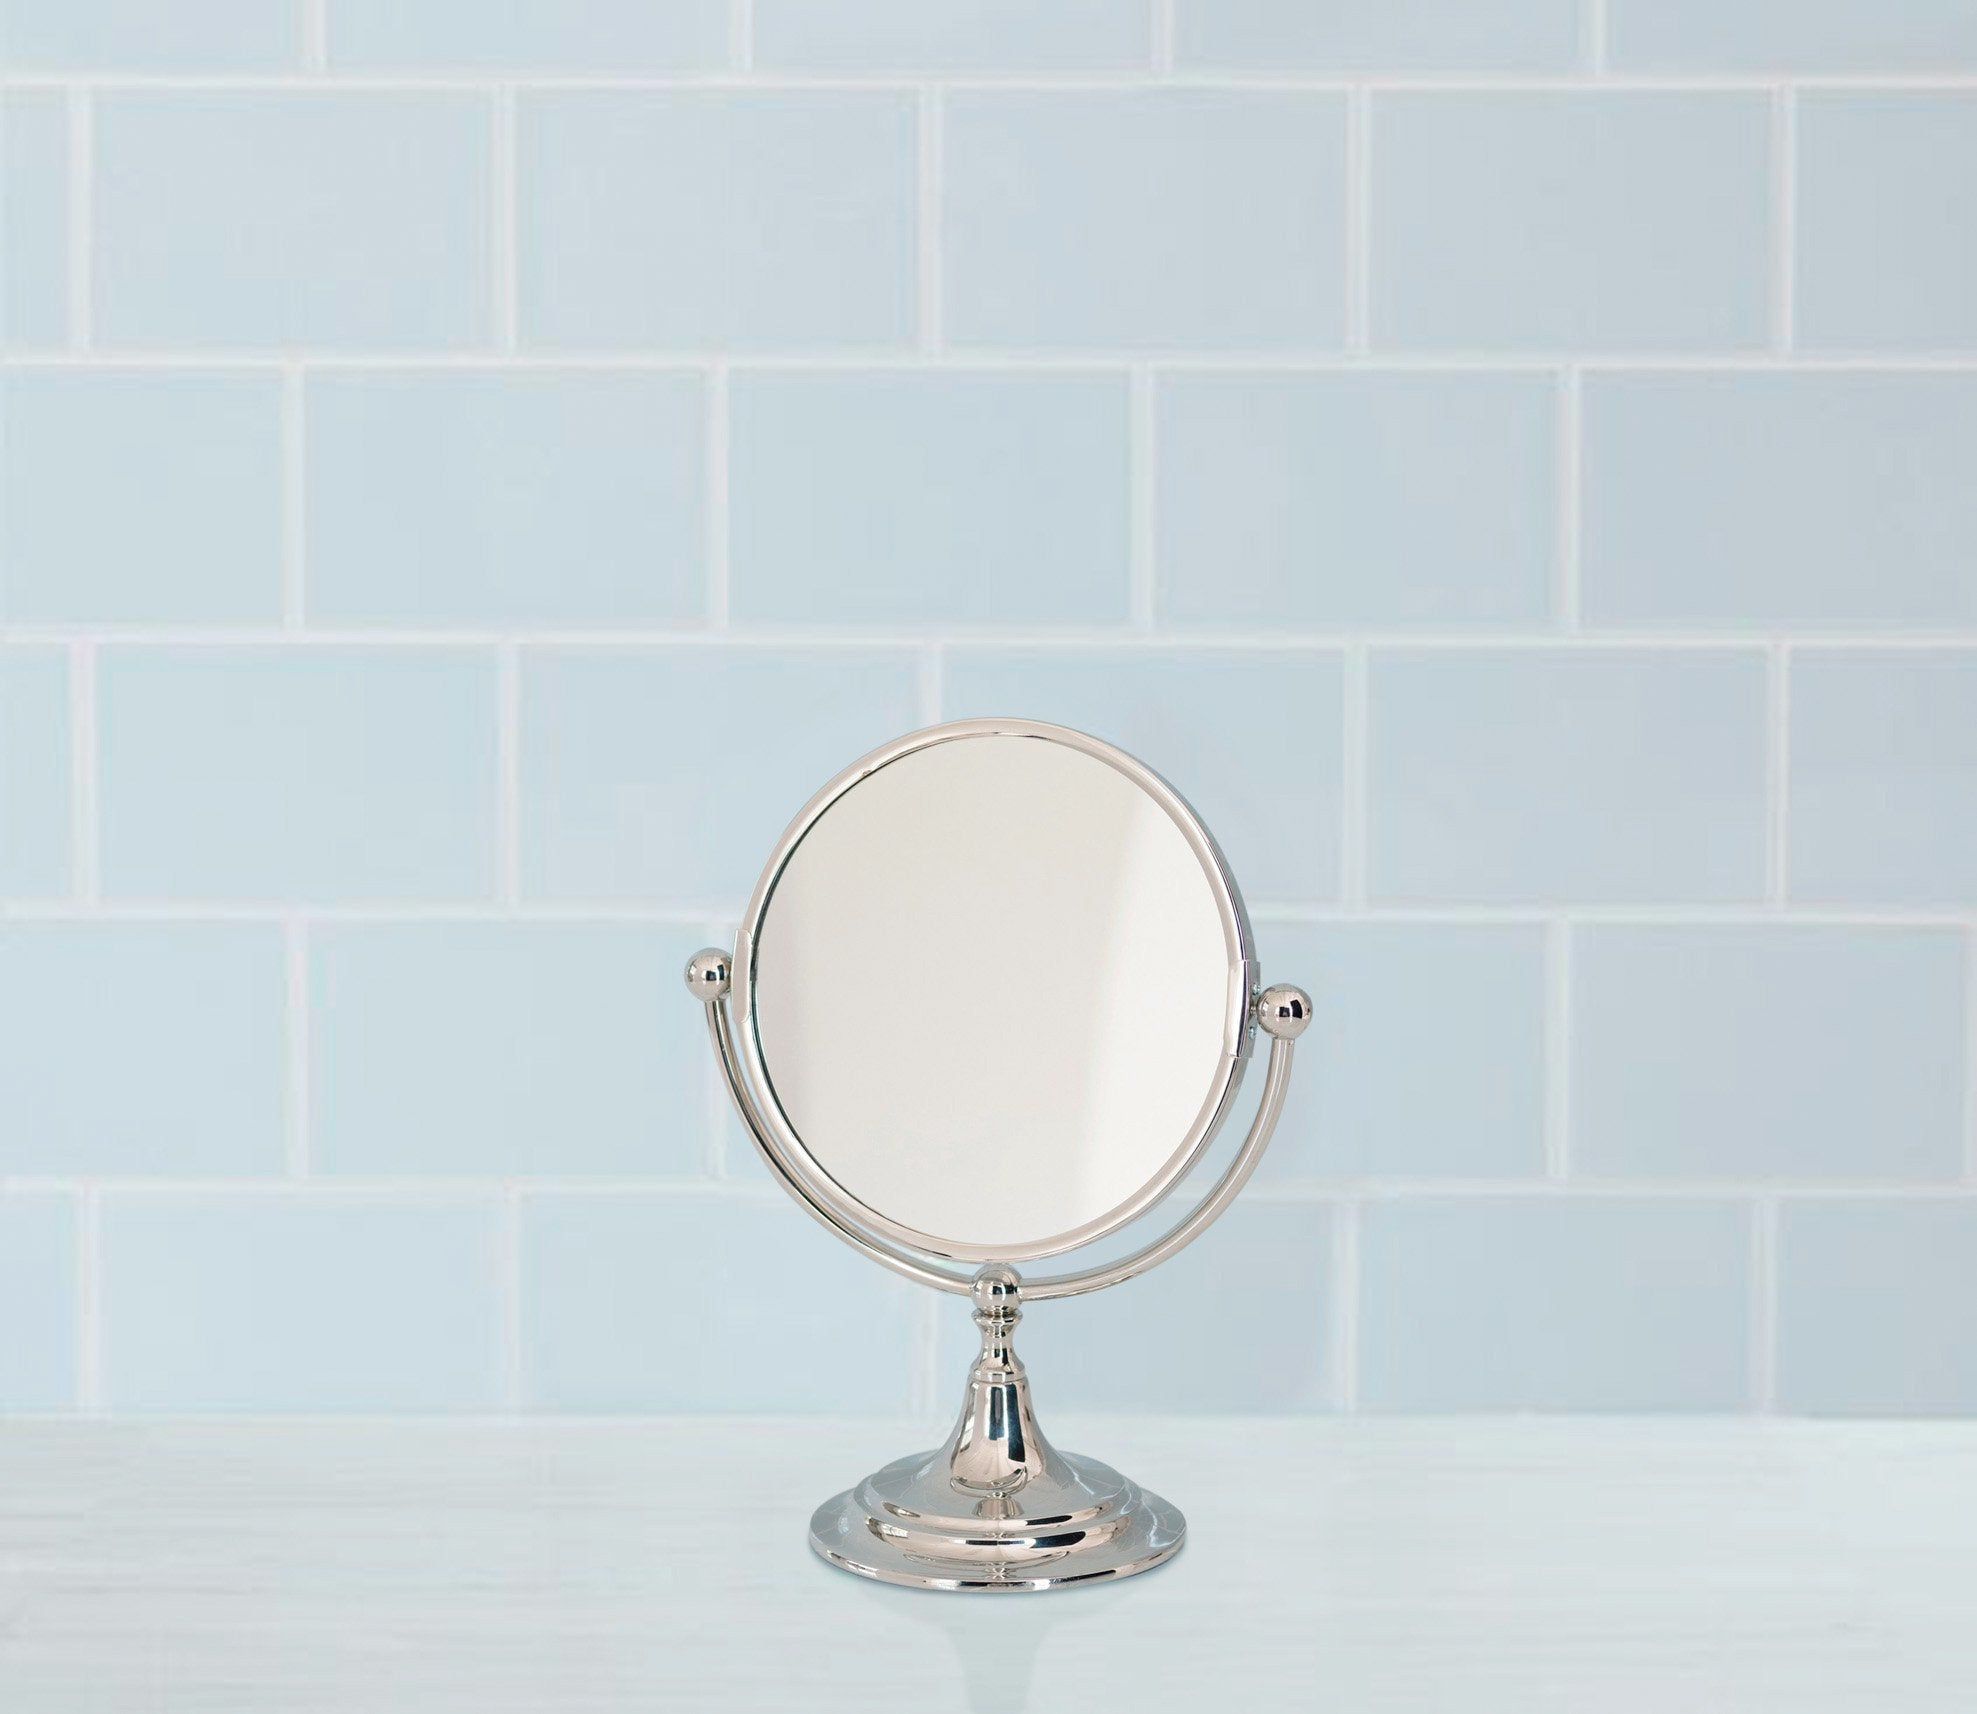 Make Up Mirror Small Product Image 1